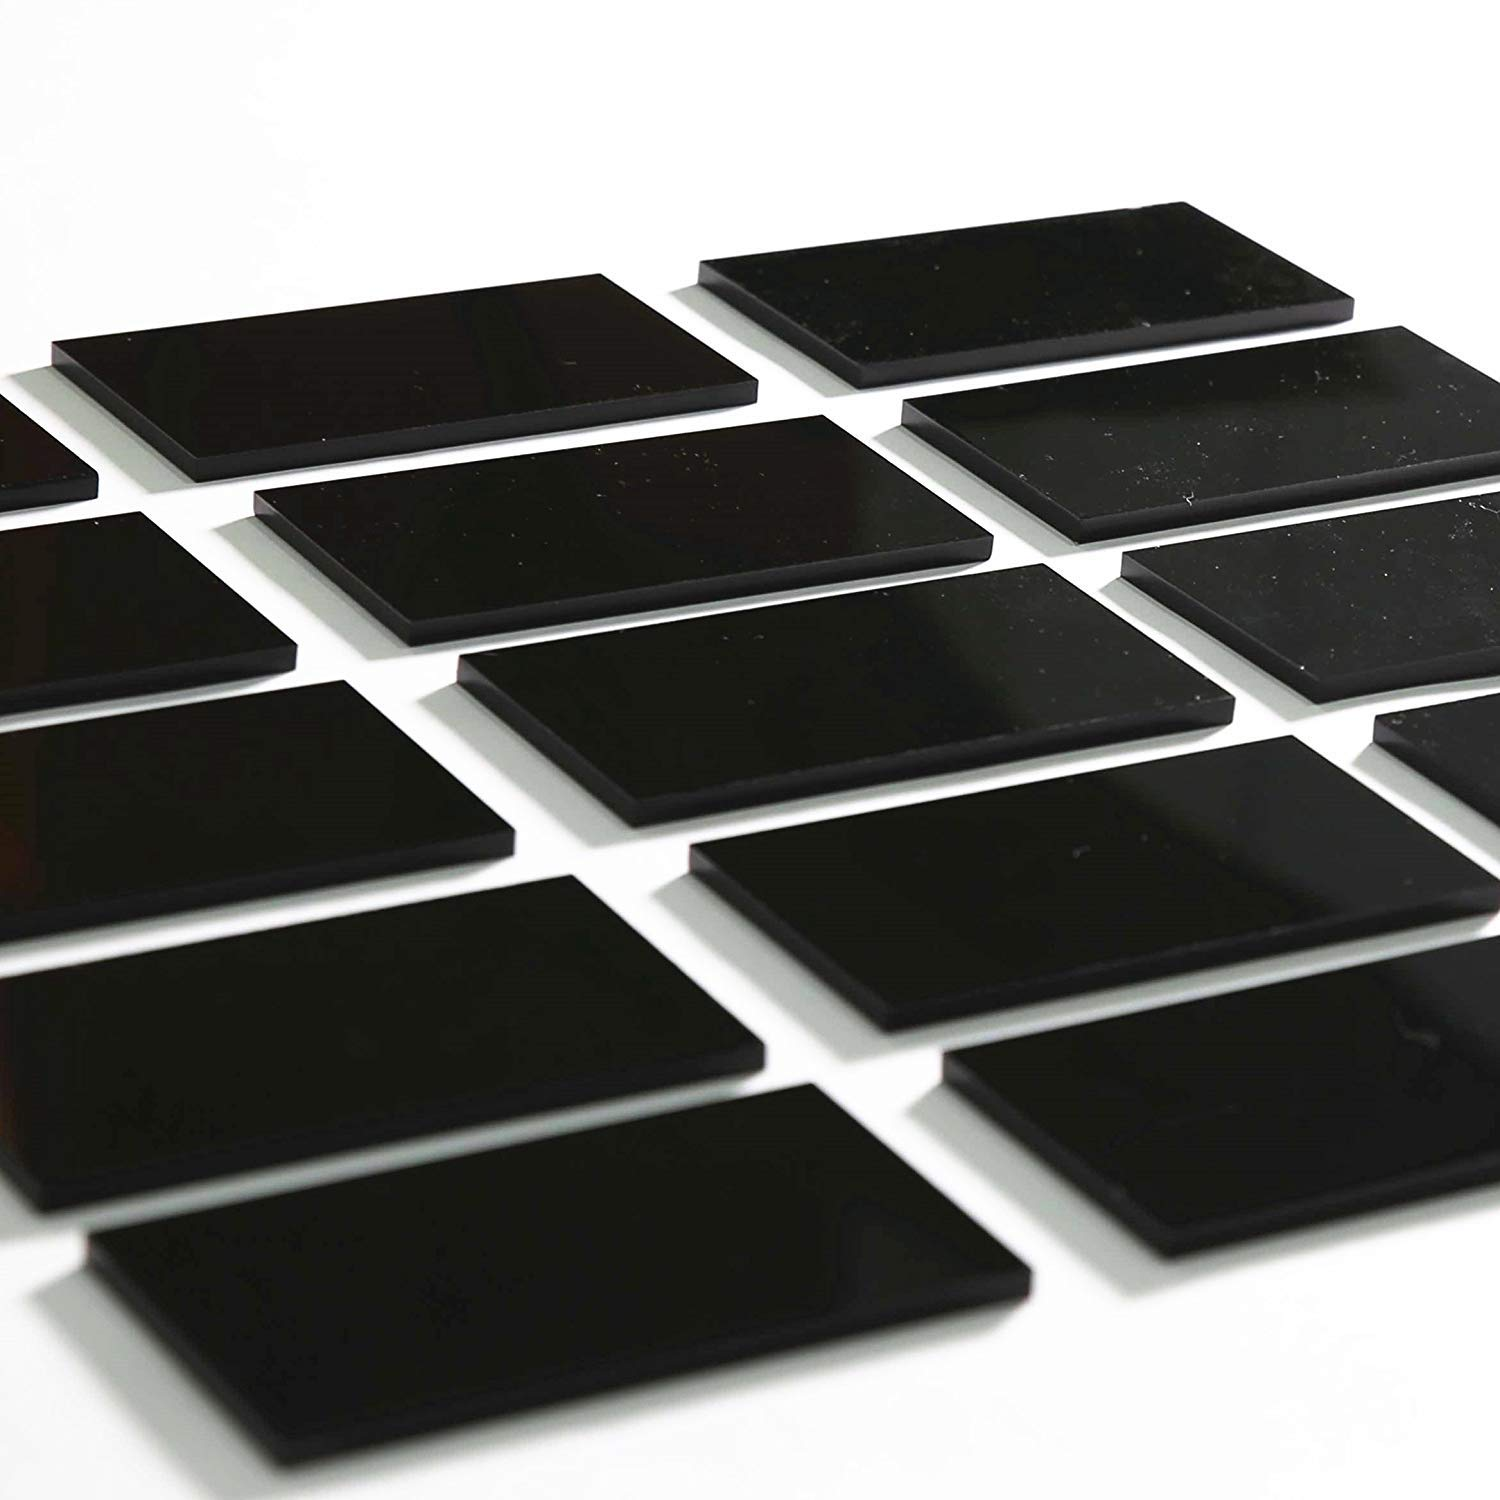 UNIQOOO 80 Count Black Acrylic Escort Place Cards - Extra Thick Rectangle  Shape - Perfect for Wedding, Birthday Parties, Table Numbers, Guest Name,  ...